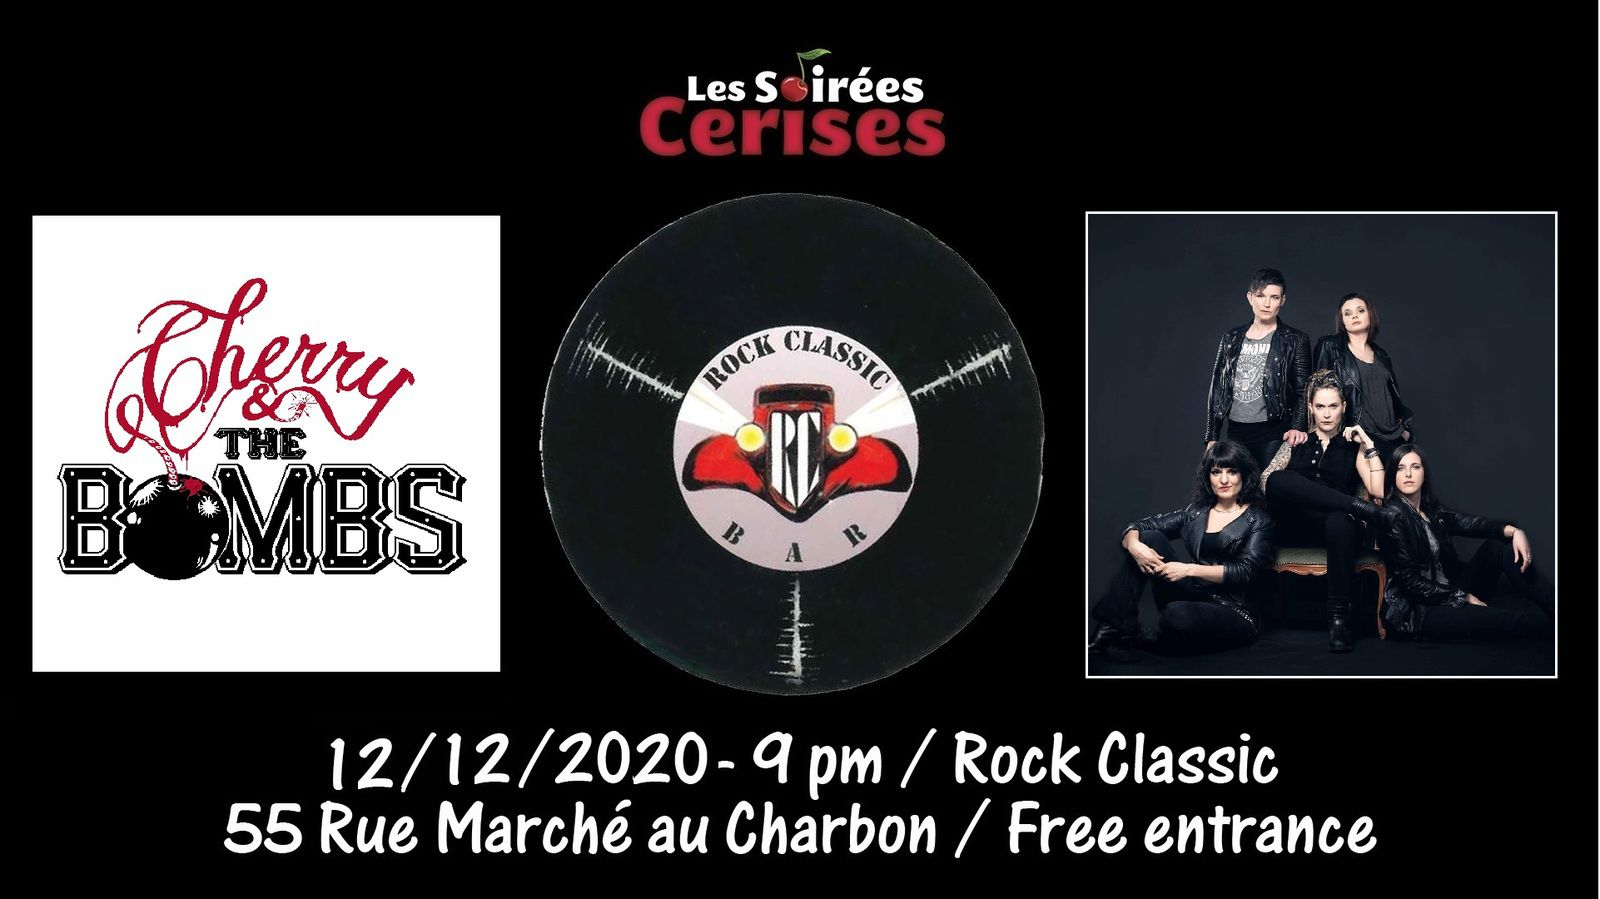 🎵 Cherry & the Bombs (The Runaways tribute band) @ Rock Classic - 12/12/2020 - 21h00 - Entrée gratuite / Free entrance